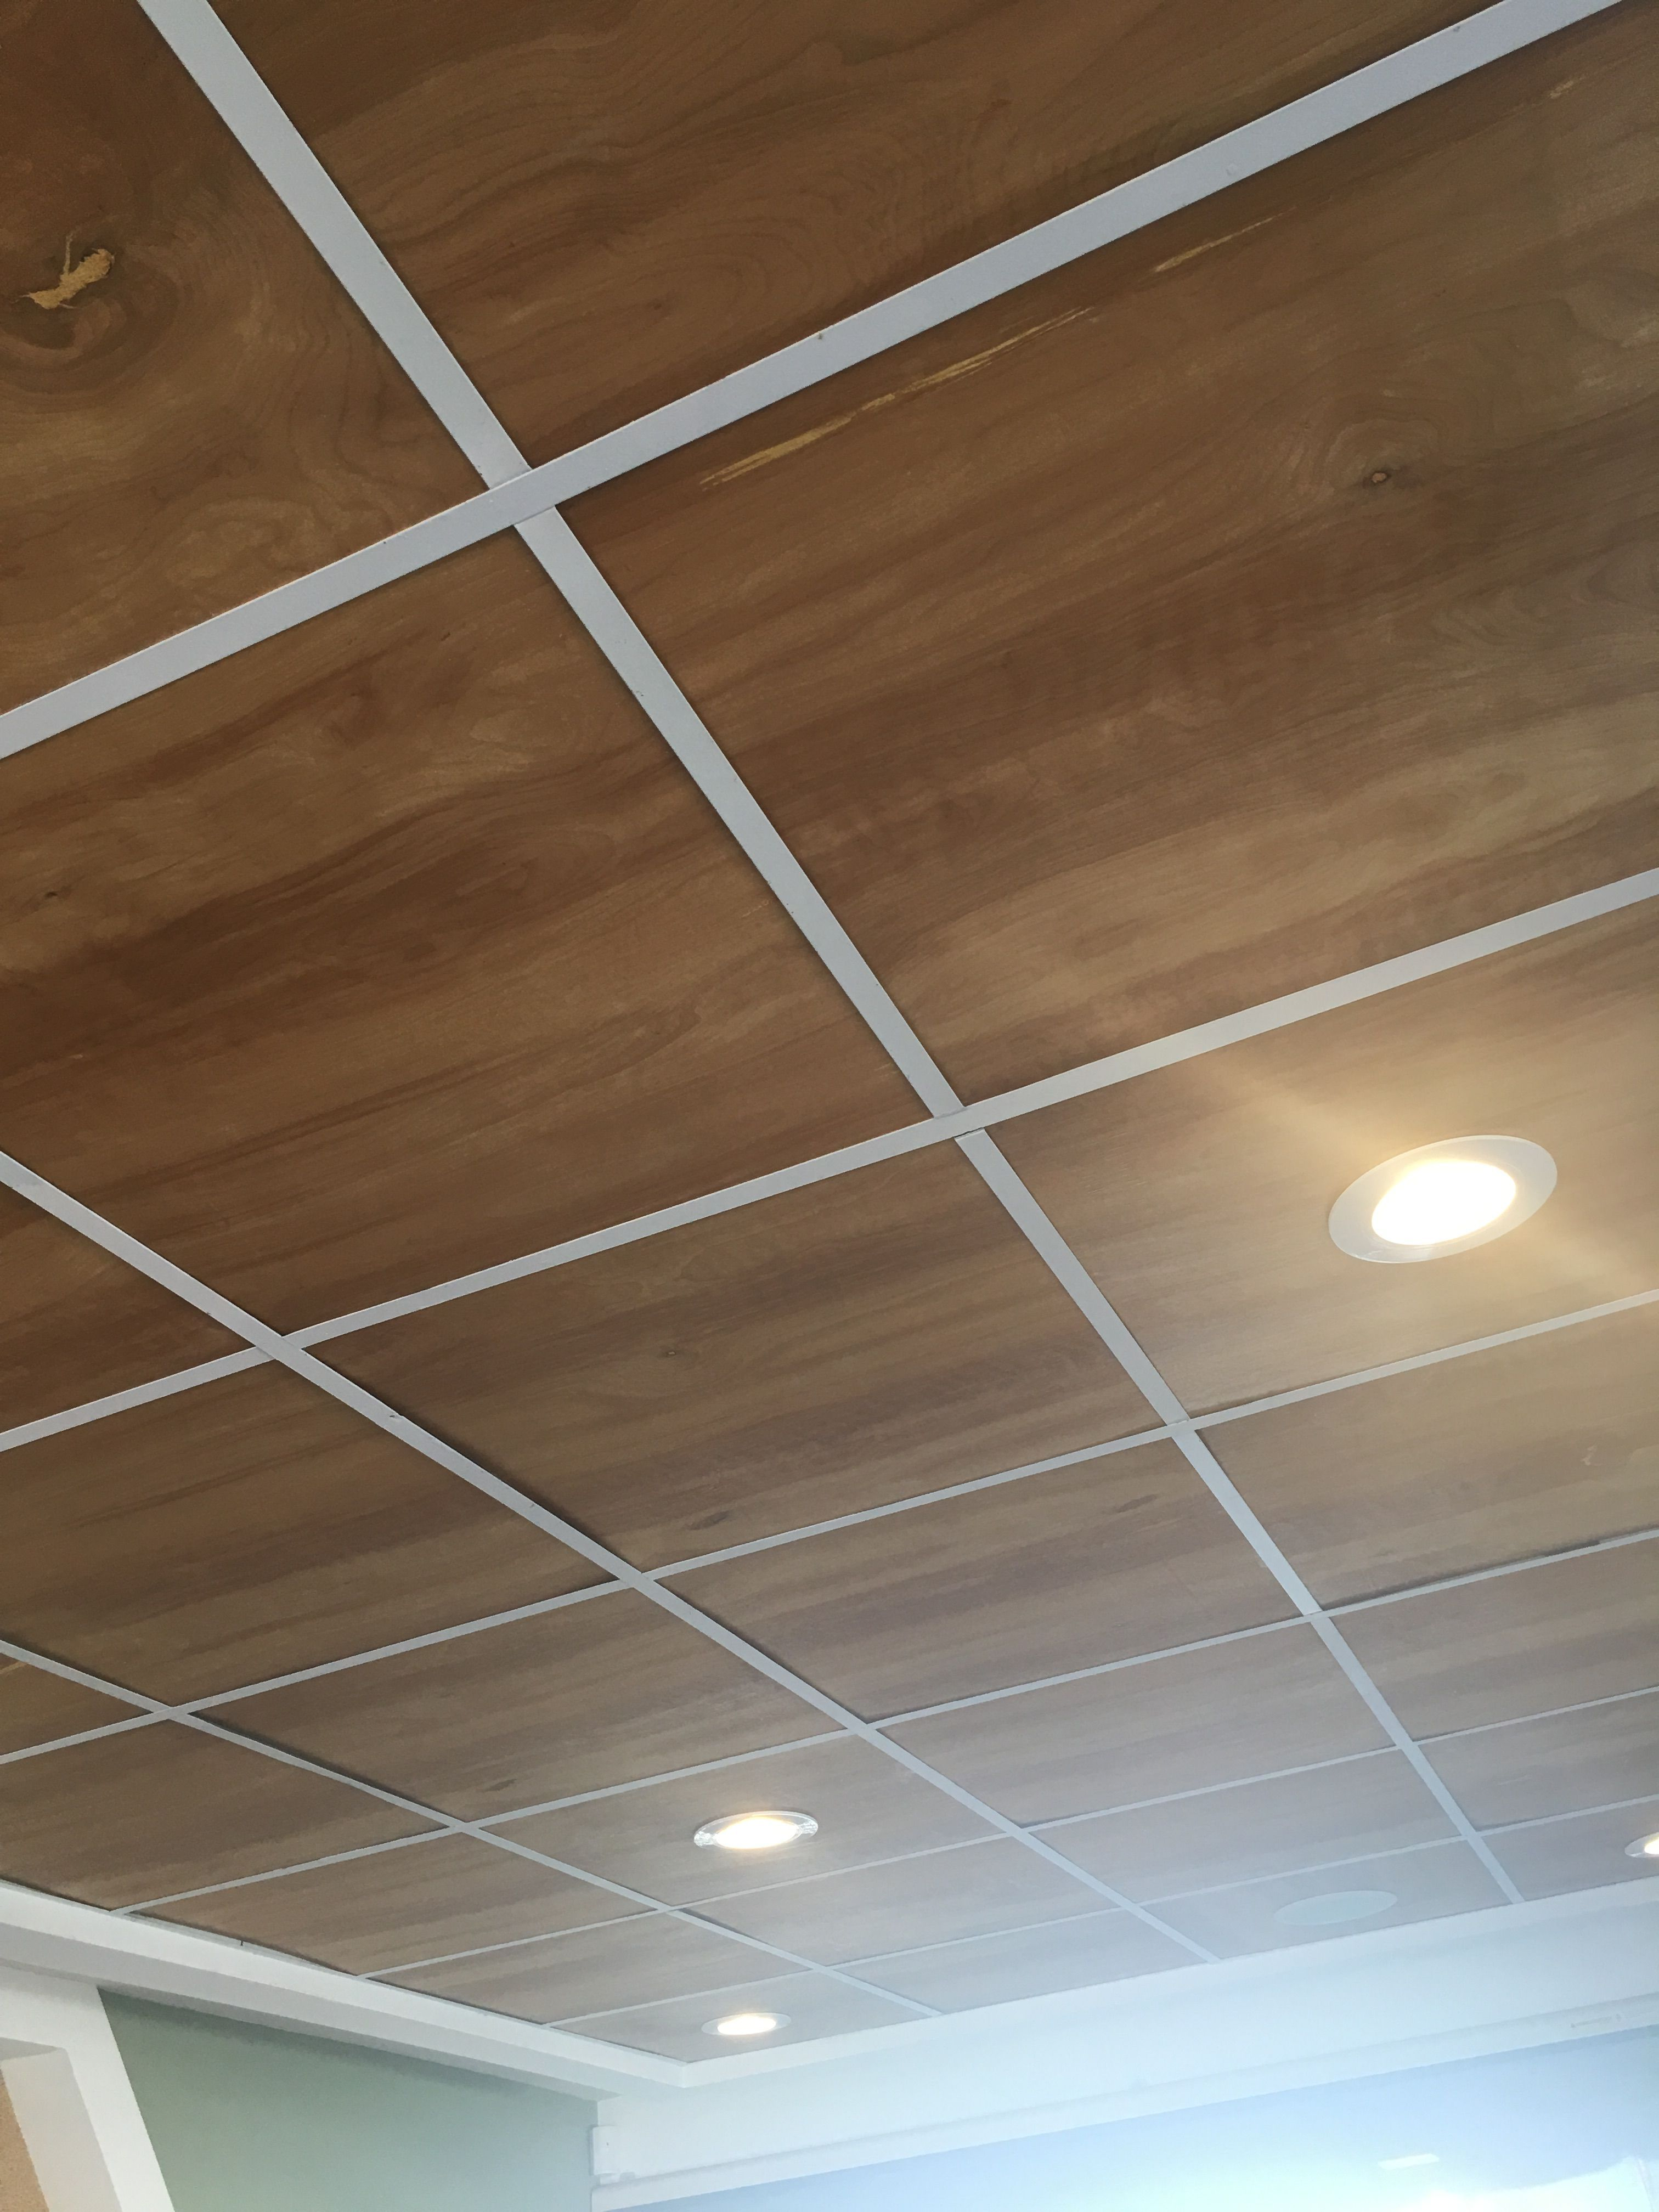 11 Most Popular Basement Ceiling Ideas With Various Designs Dropped Ceiling Acoustic Ceiling Tiles Ceiling Tiles